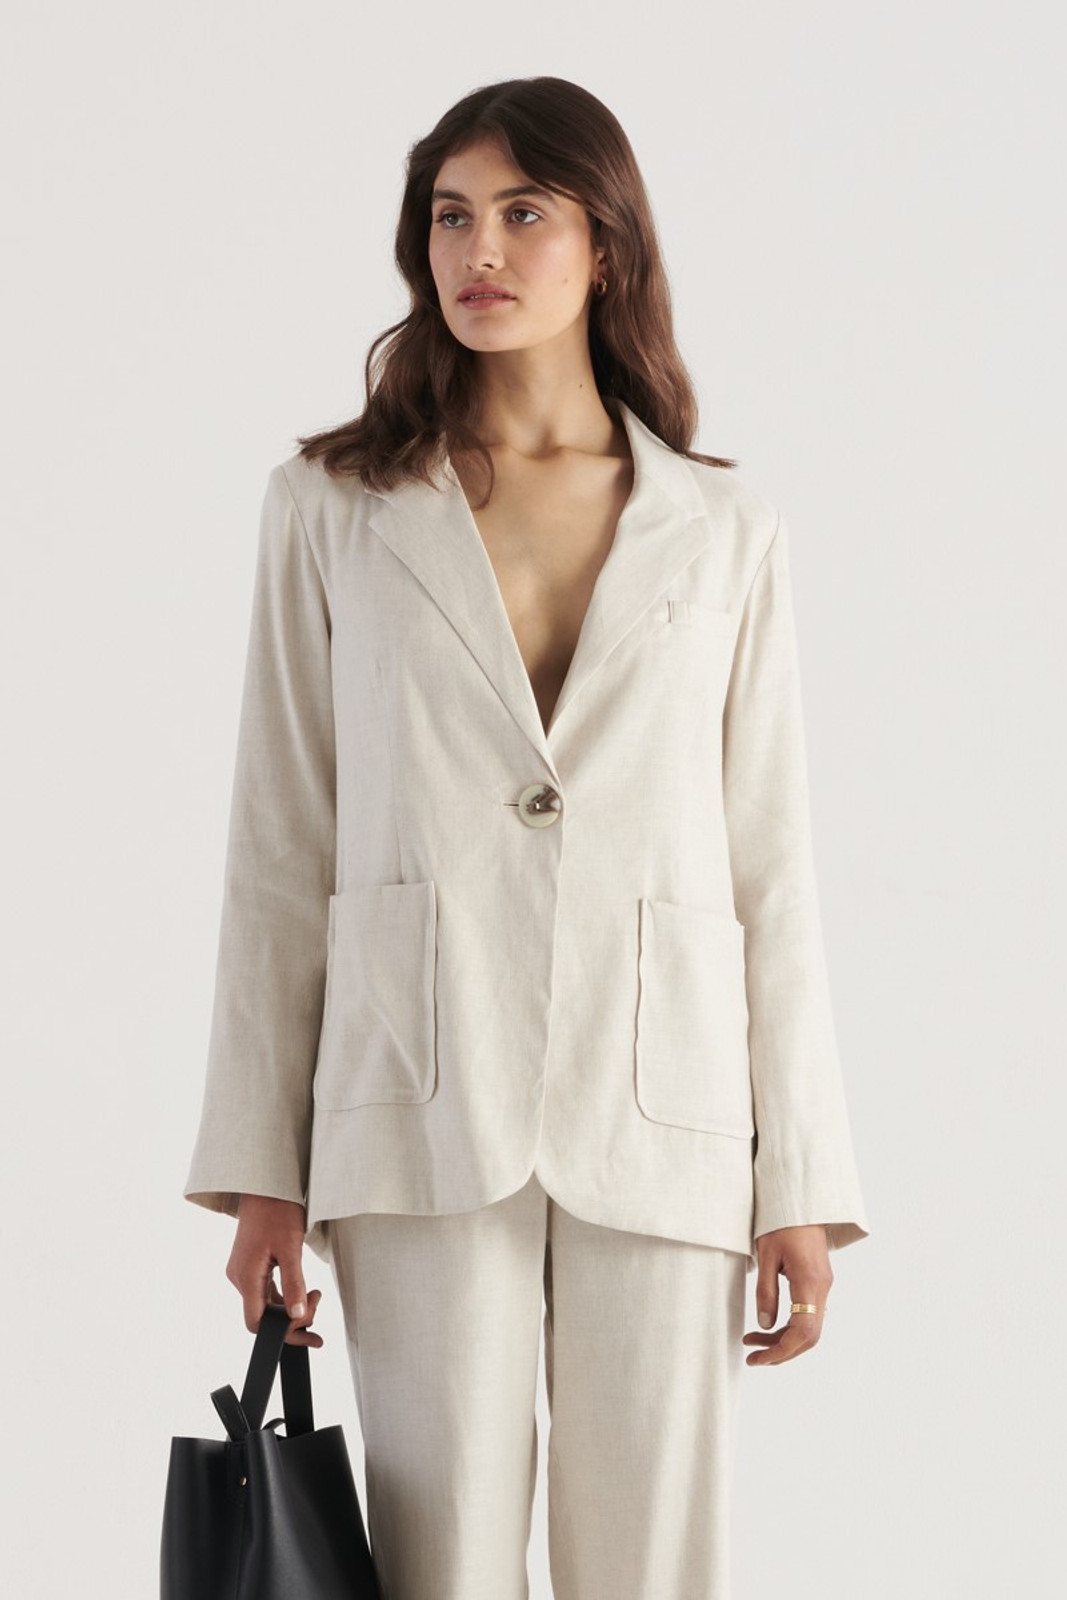 Elka Collective WOMENS Neutrals Cate Jacket 0